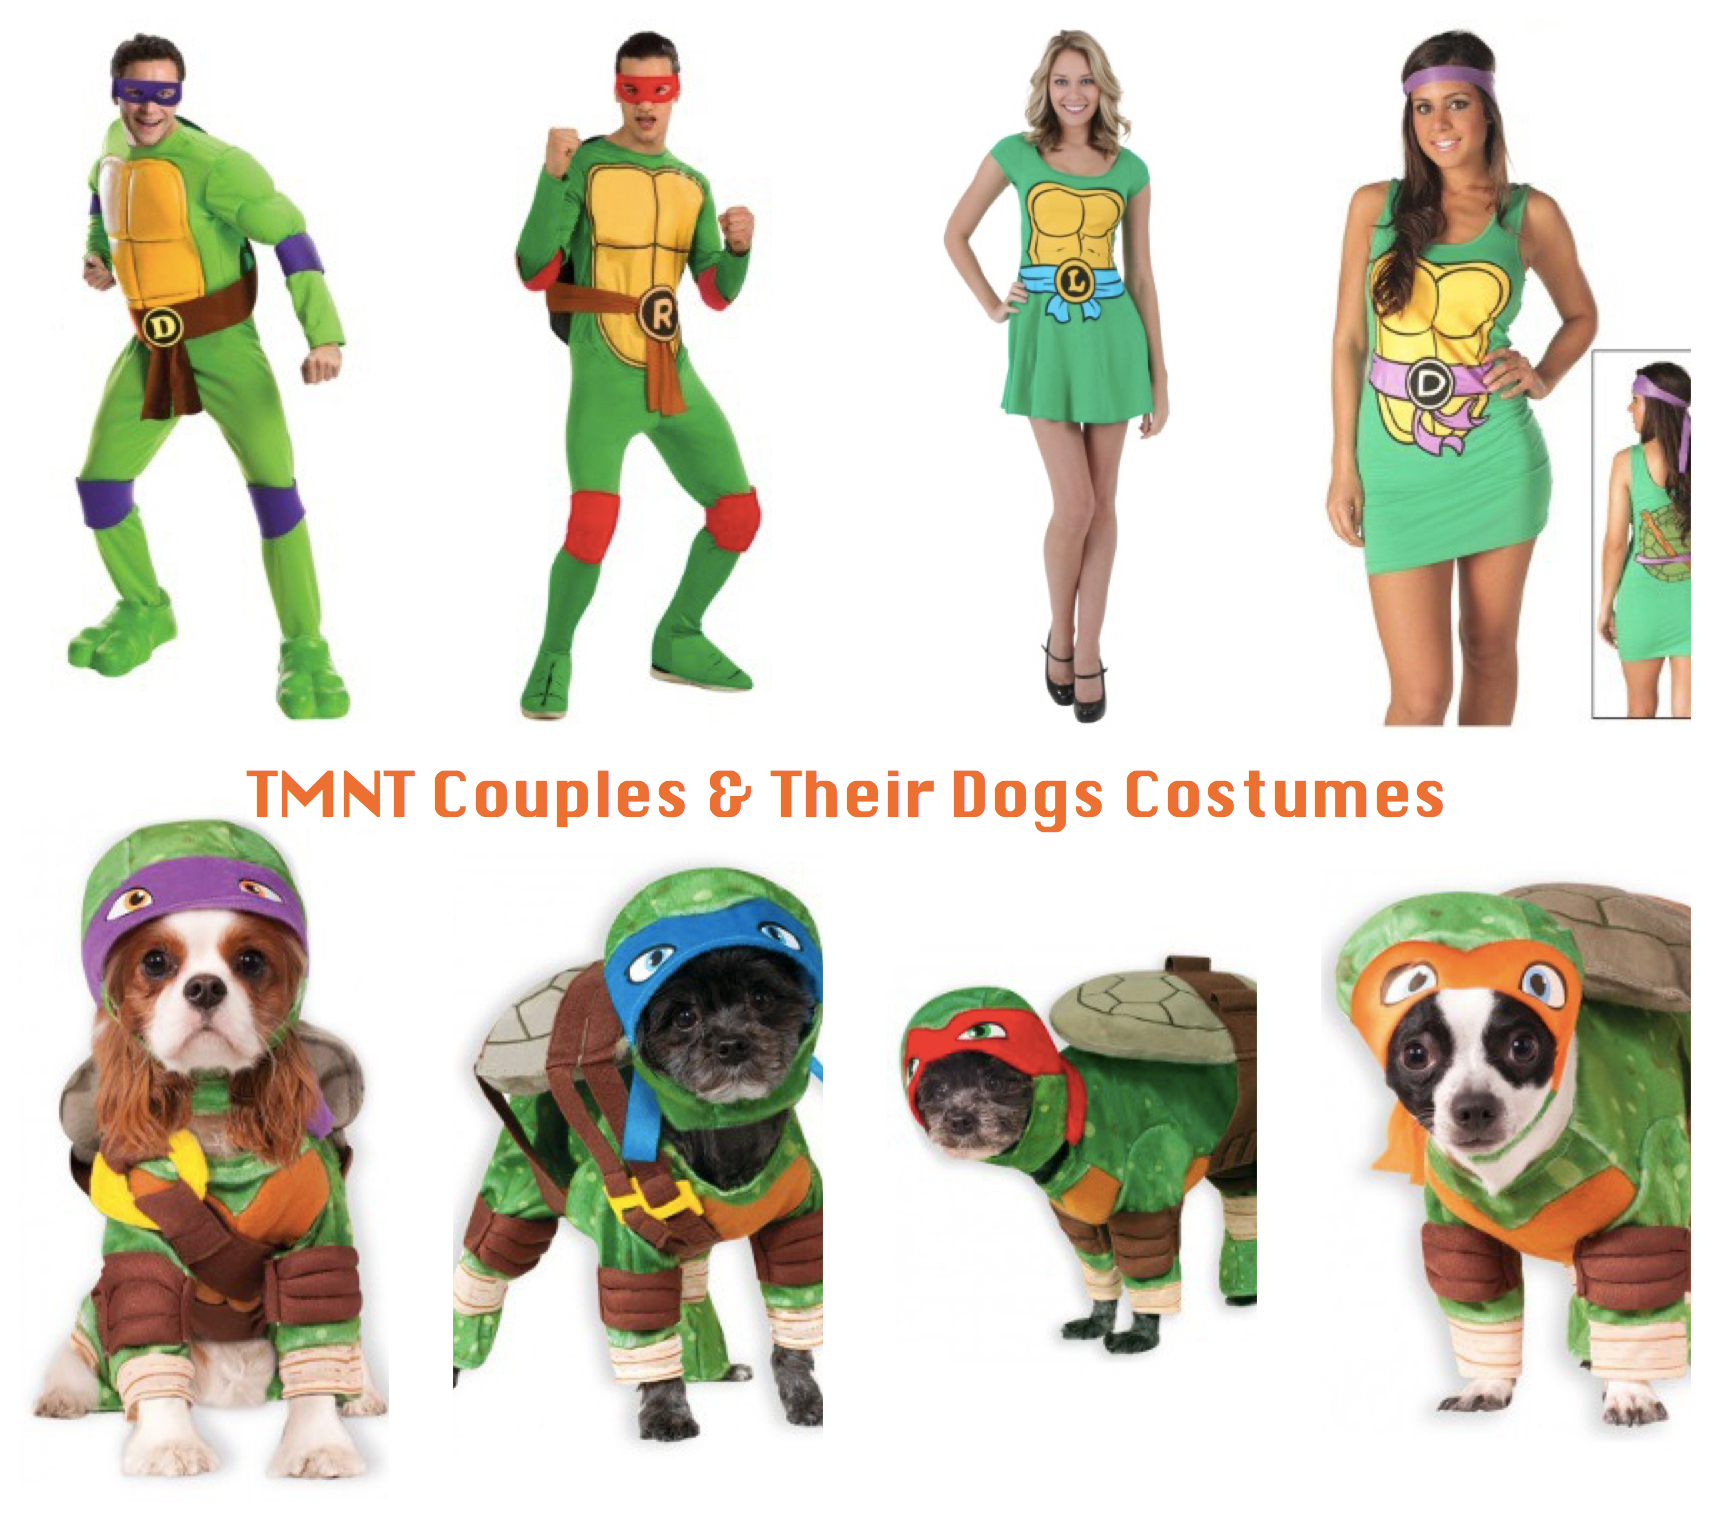 TMNT Couples & Their Dogs Costumes